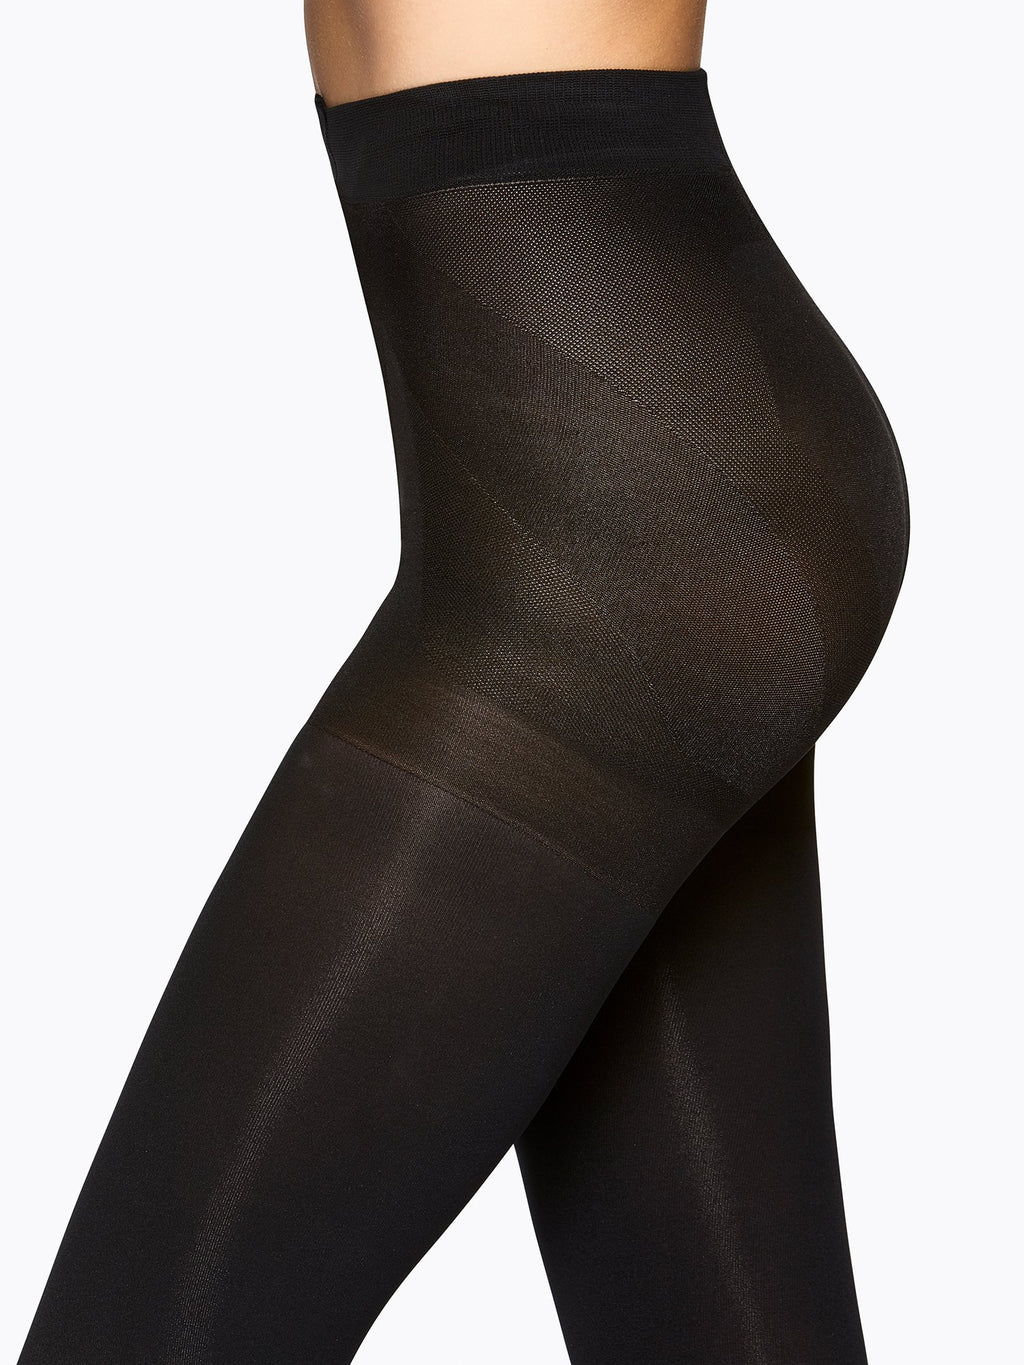 Vogue Push Up 100 Denier Tights